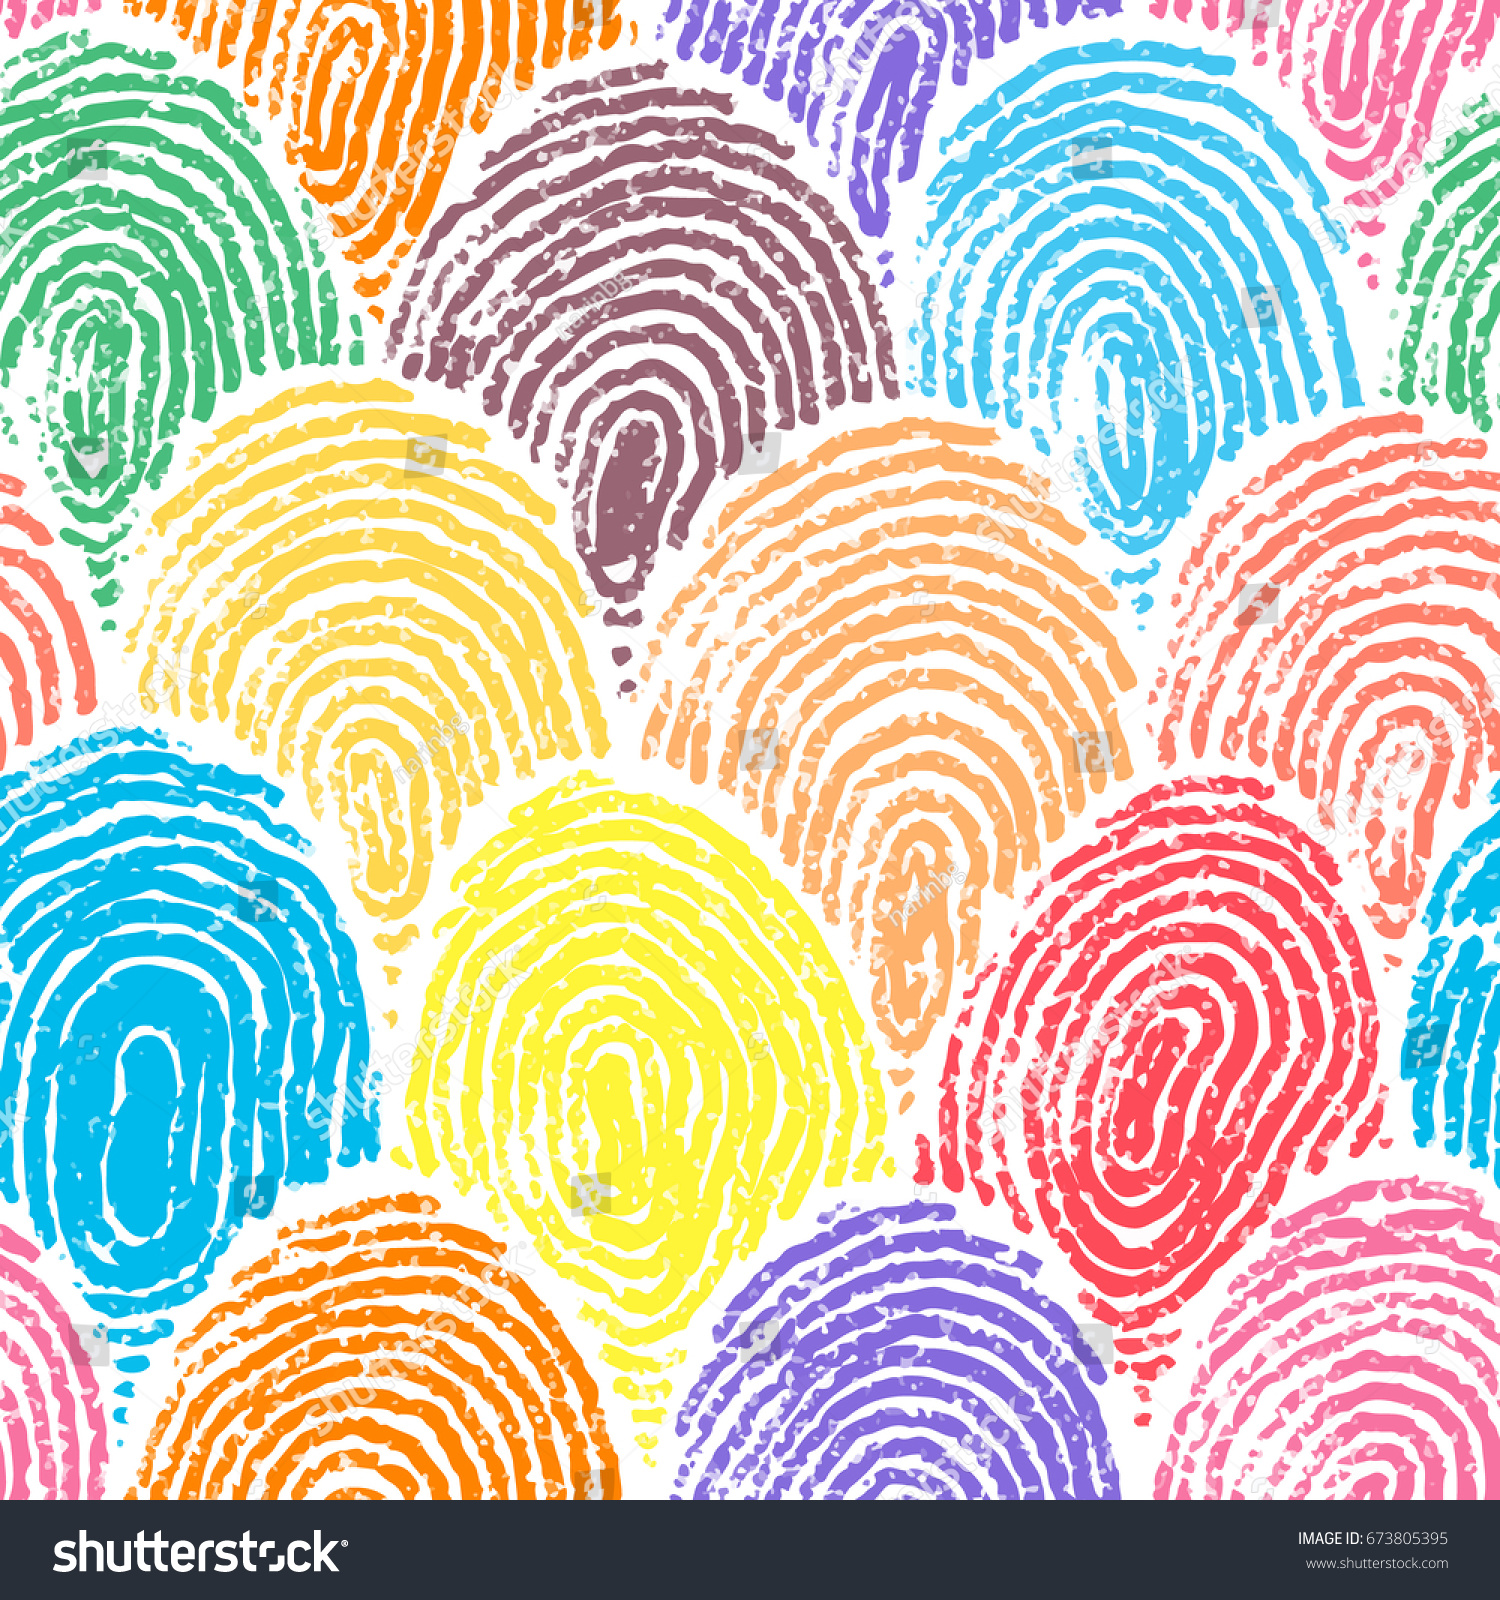 Colorful Doodle Fingerprint Drawing Seamless Background Stock Vector ...